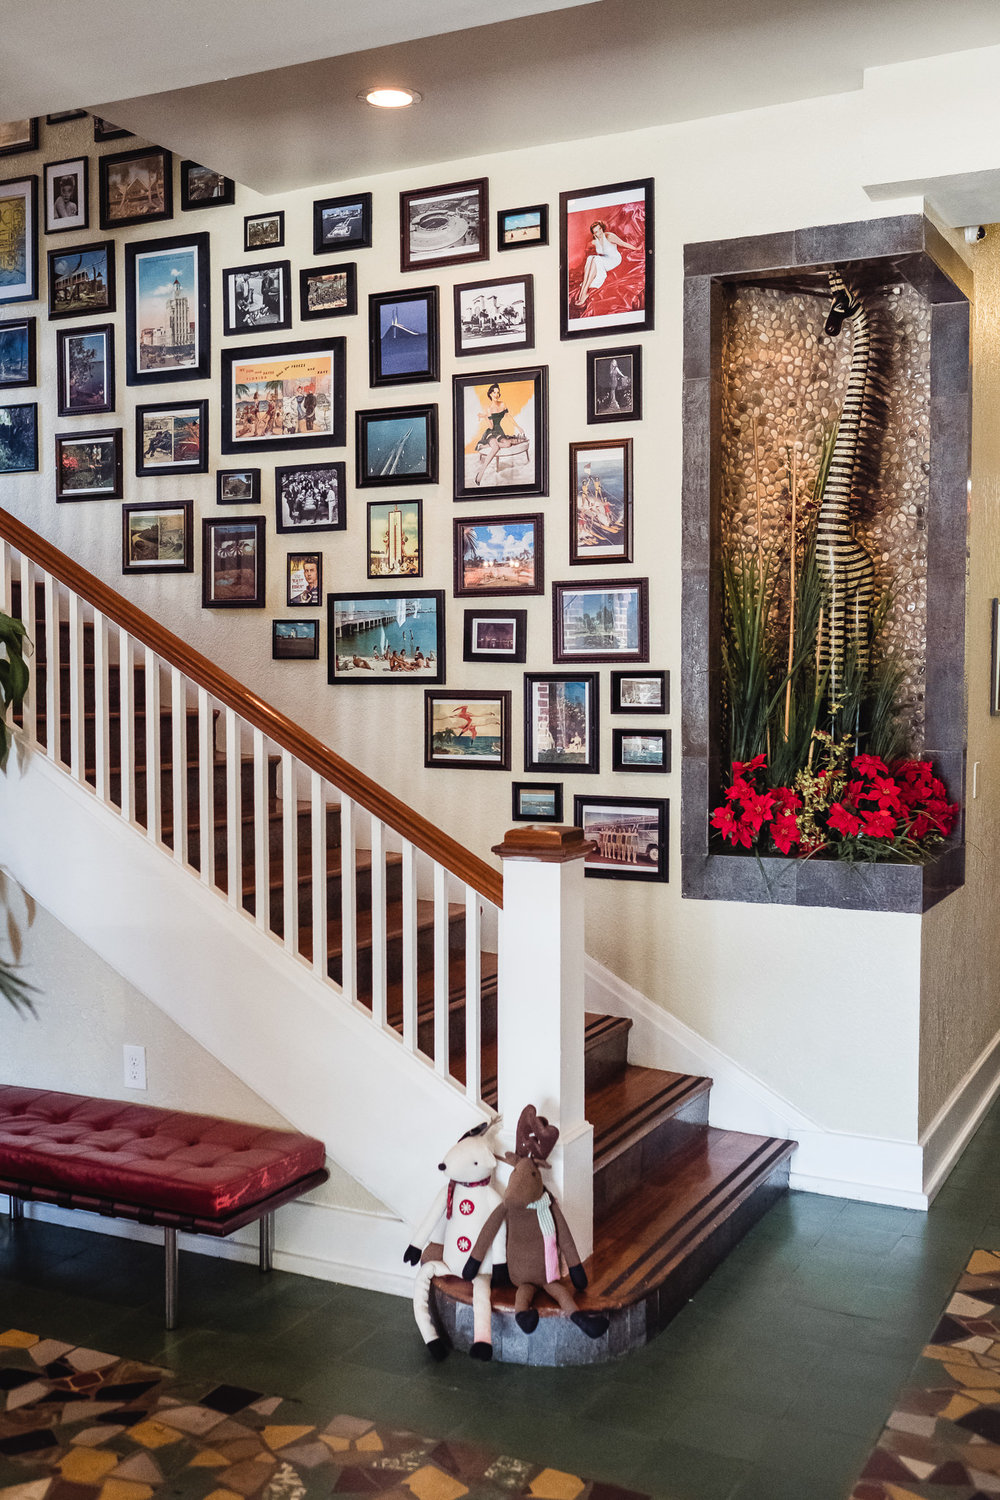 Collage of photographs lining the lobby staircase at the Hollander Hotel in St. Petersburg, Florida